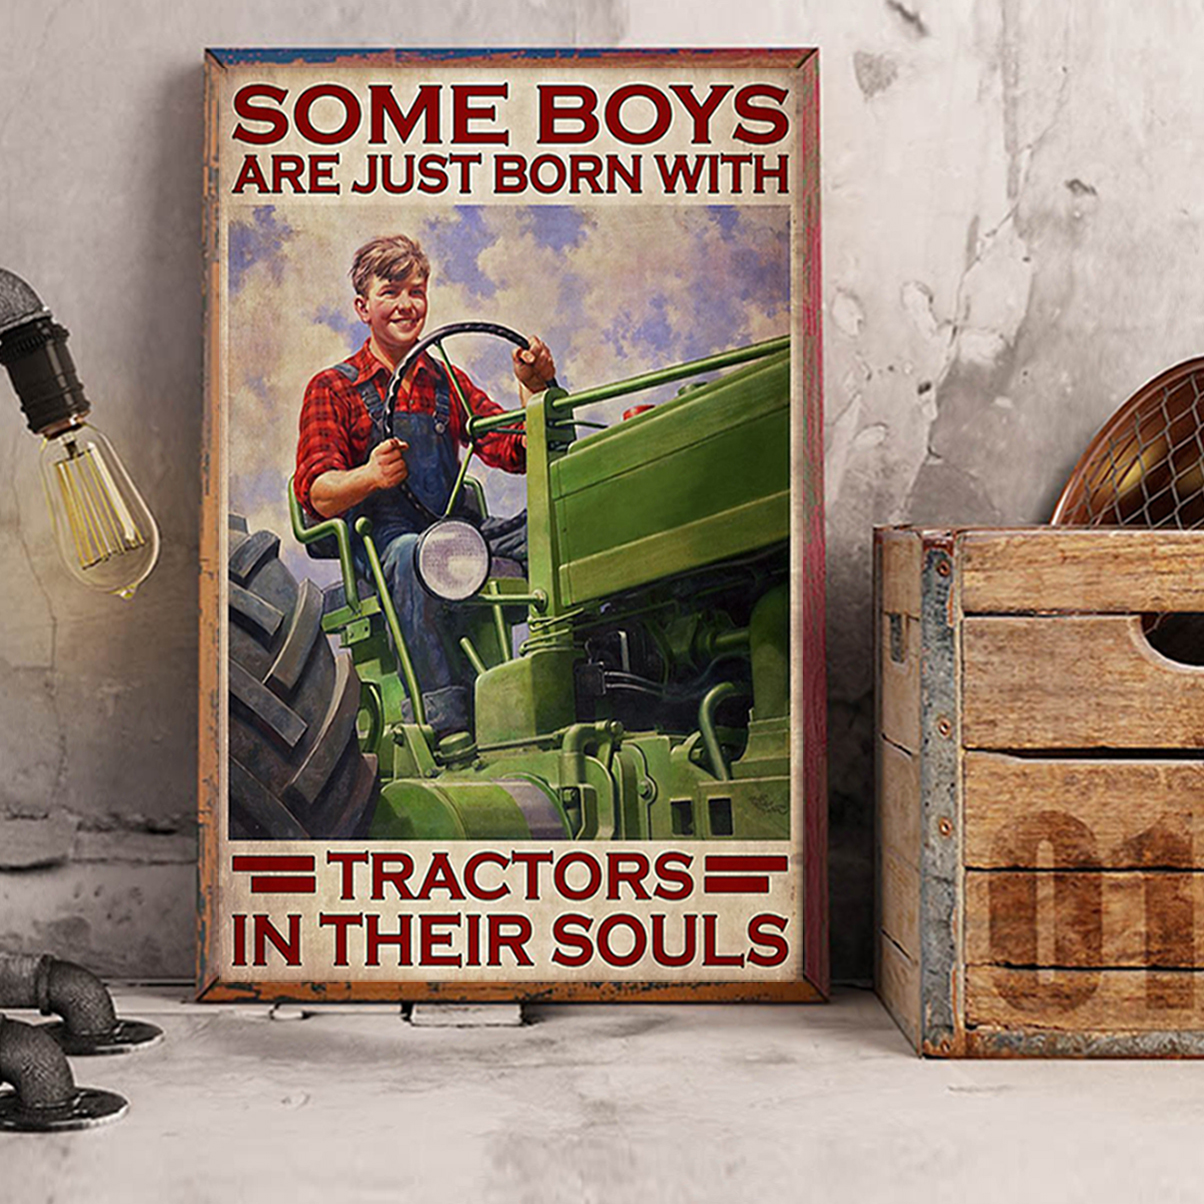 Some boys are just born with tractors in their souls poster A3